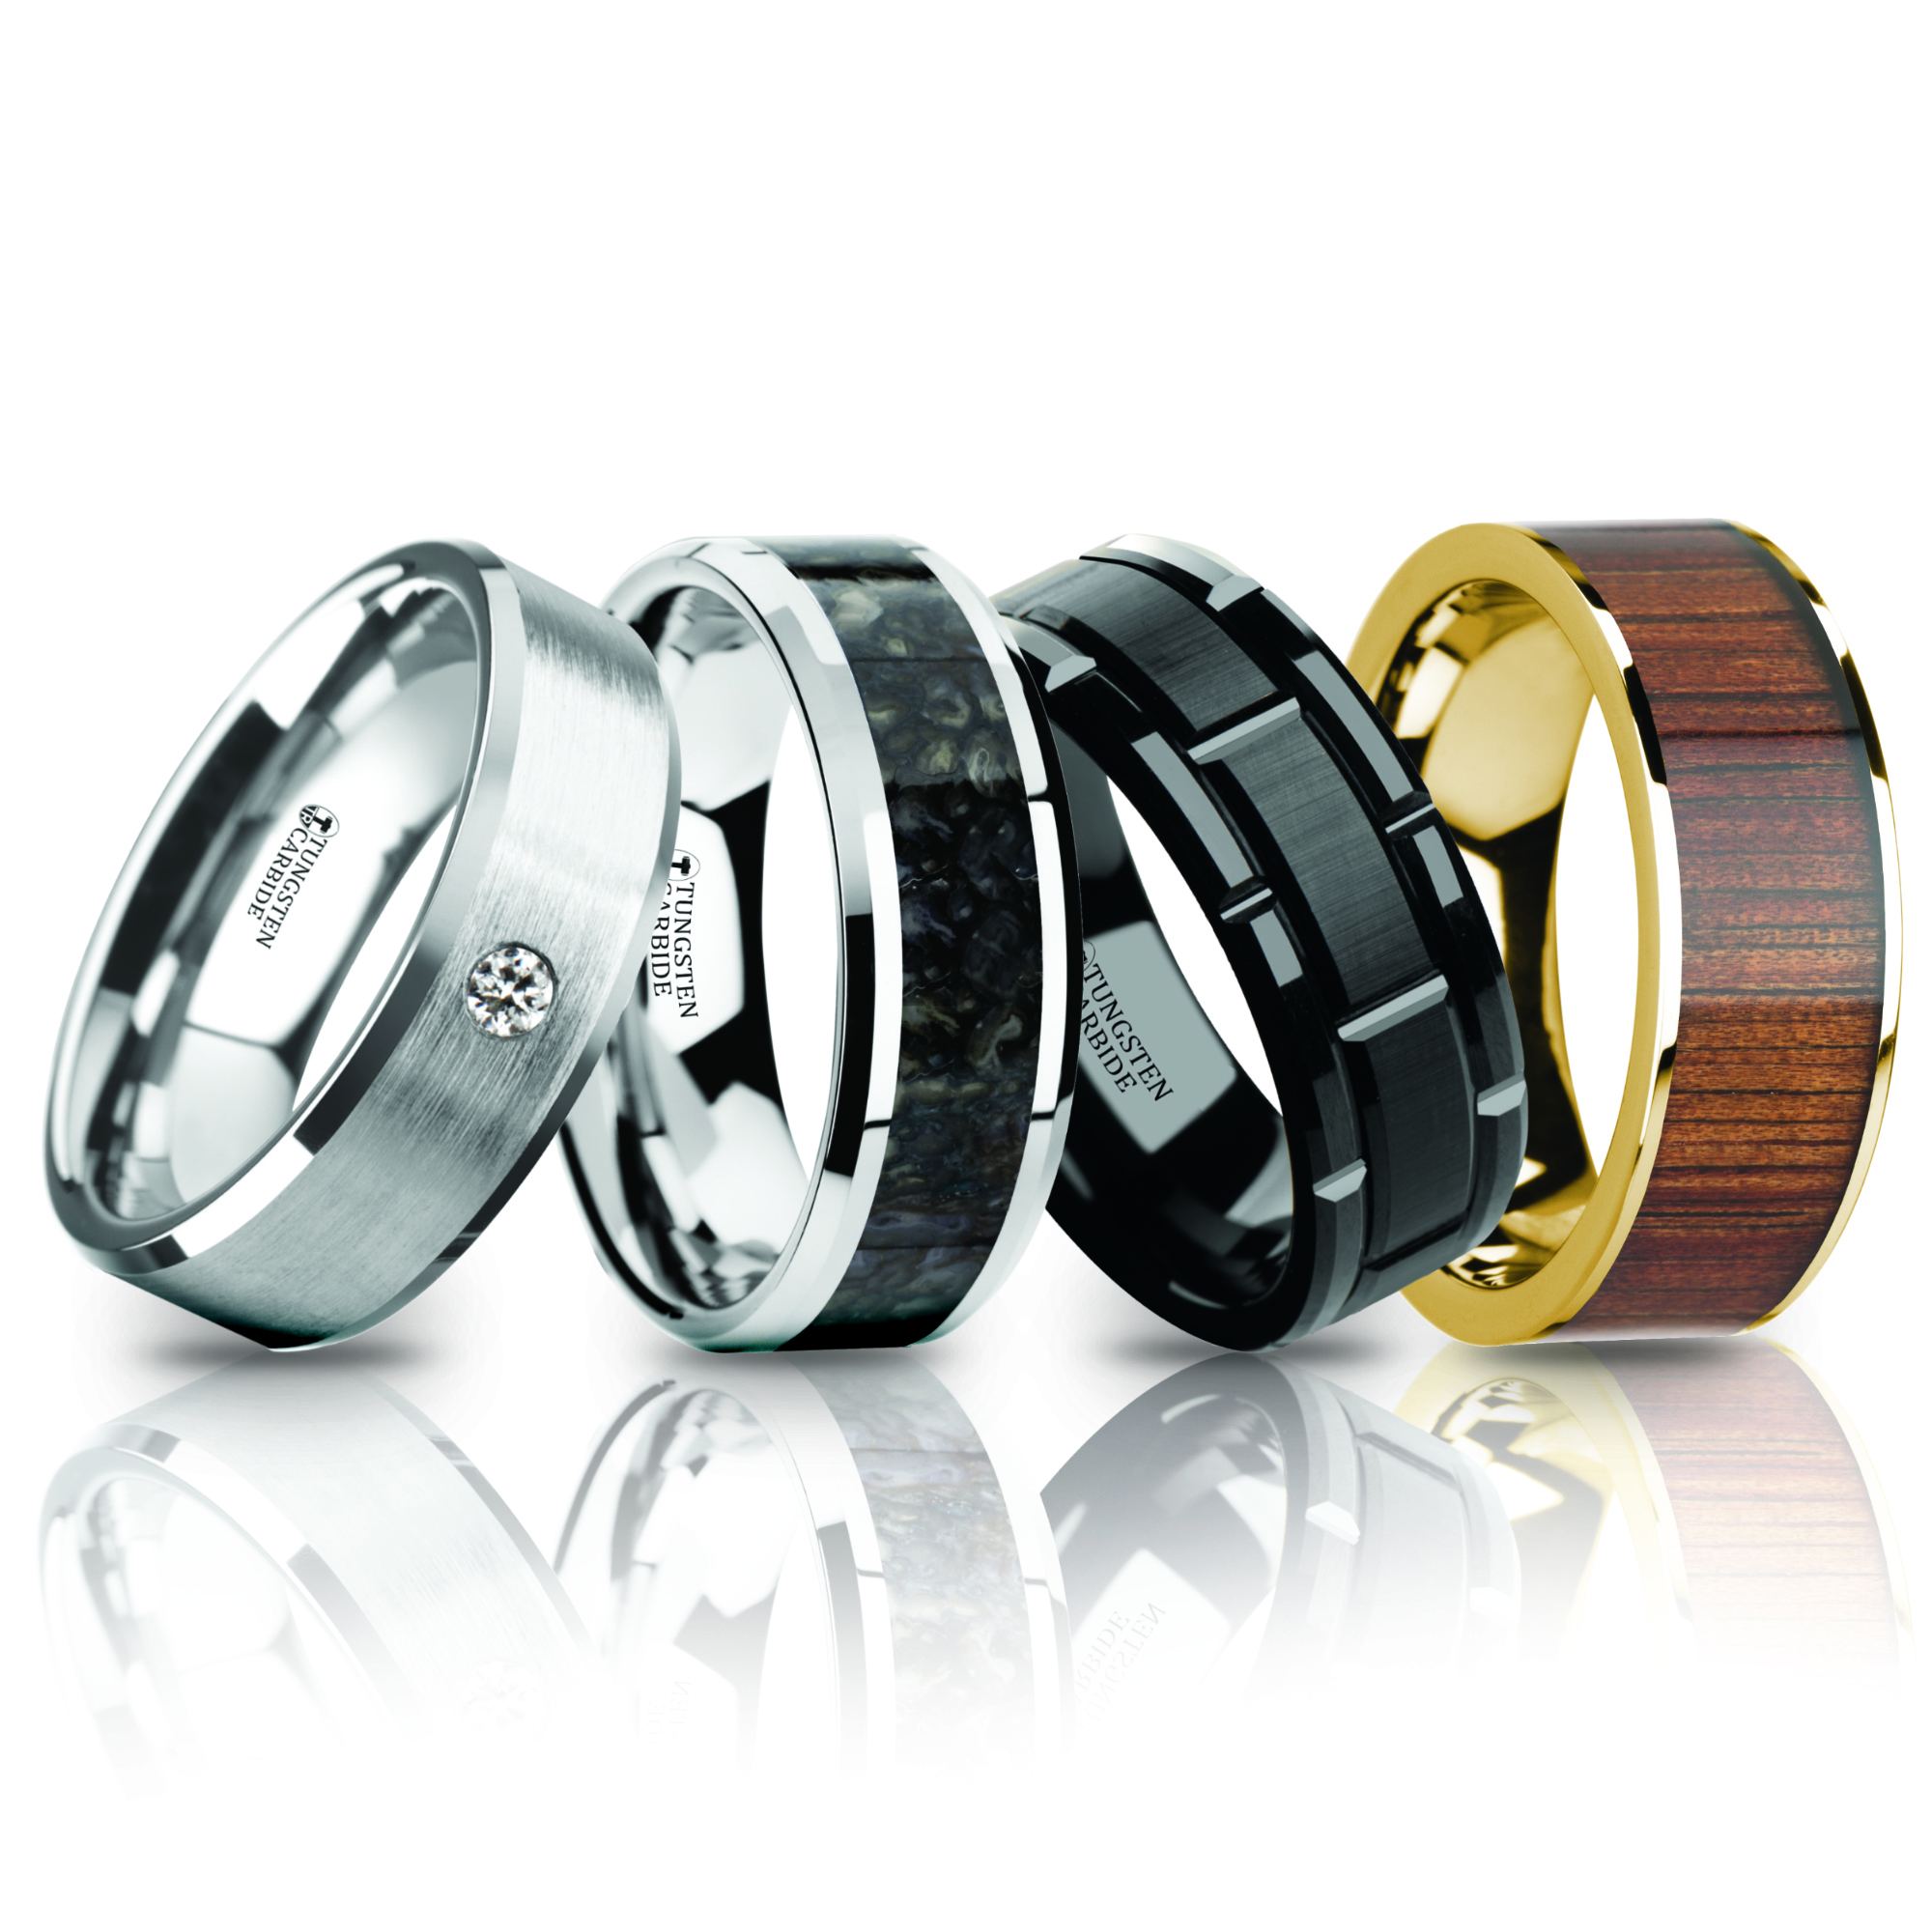 tungsten carbide metals rings forevermetals about cheap are forever why so